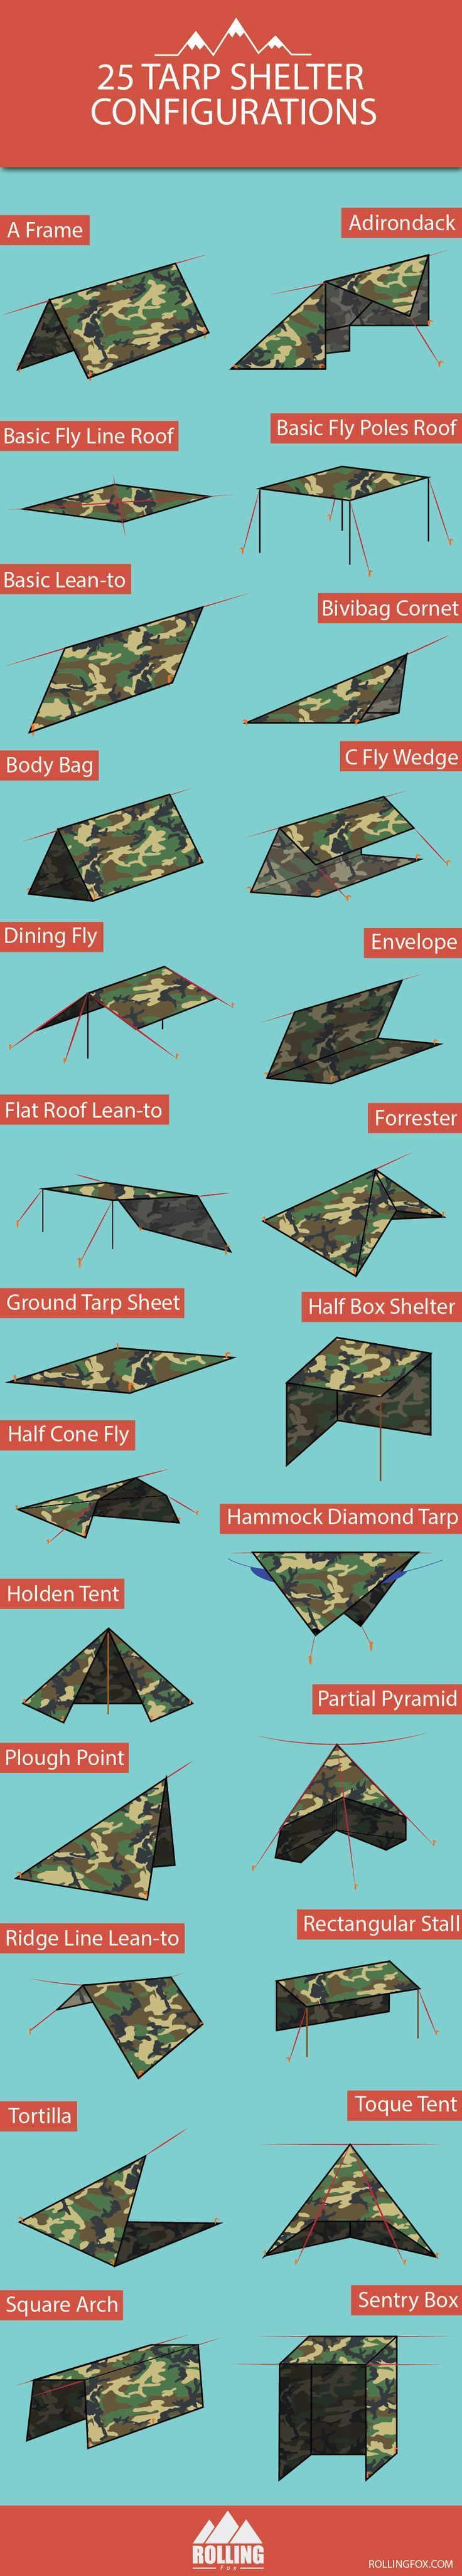 I've listed 25 different tarp shelter designs to help you get started. Each configuration has its pros and cons and there isn't really a perfect design for all occasions. You'll have to chose the right one depending on your situation or you could just try